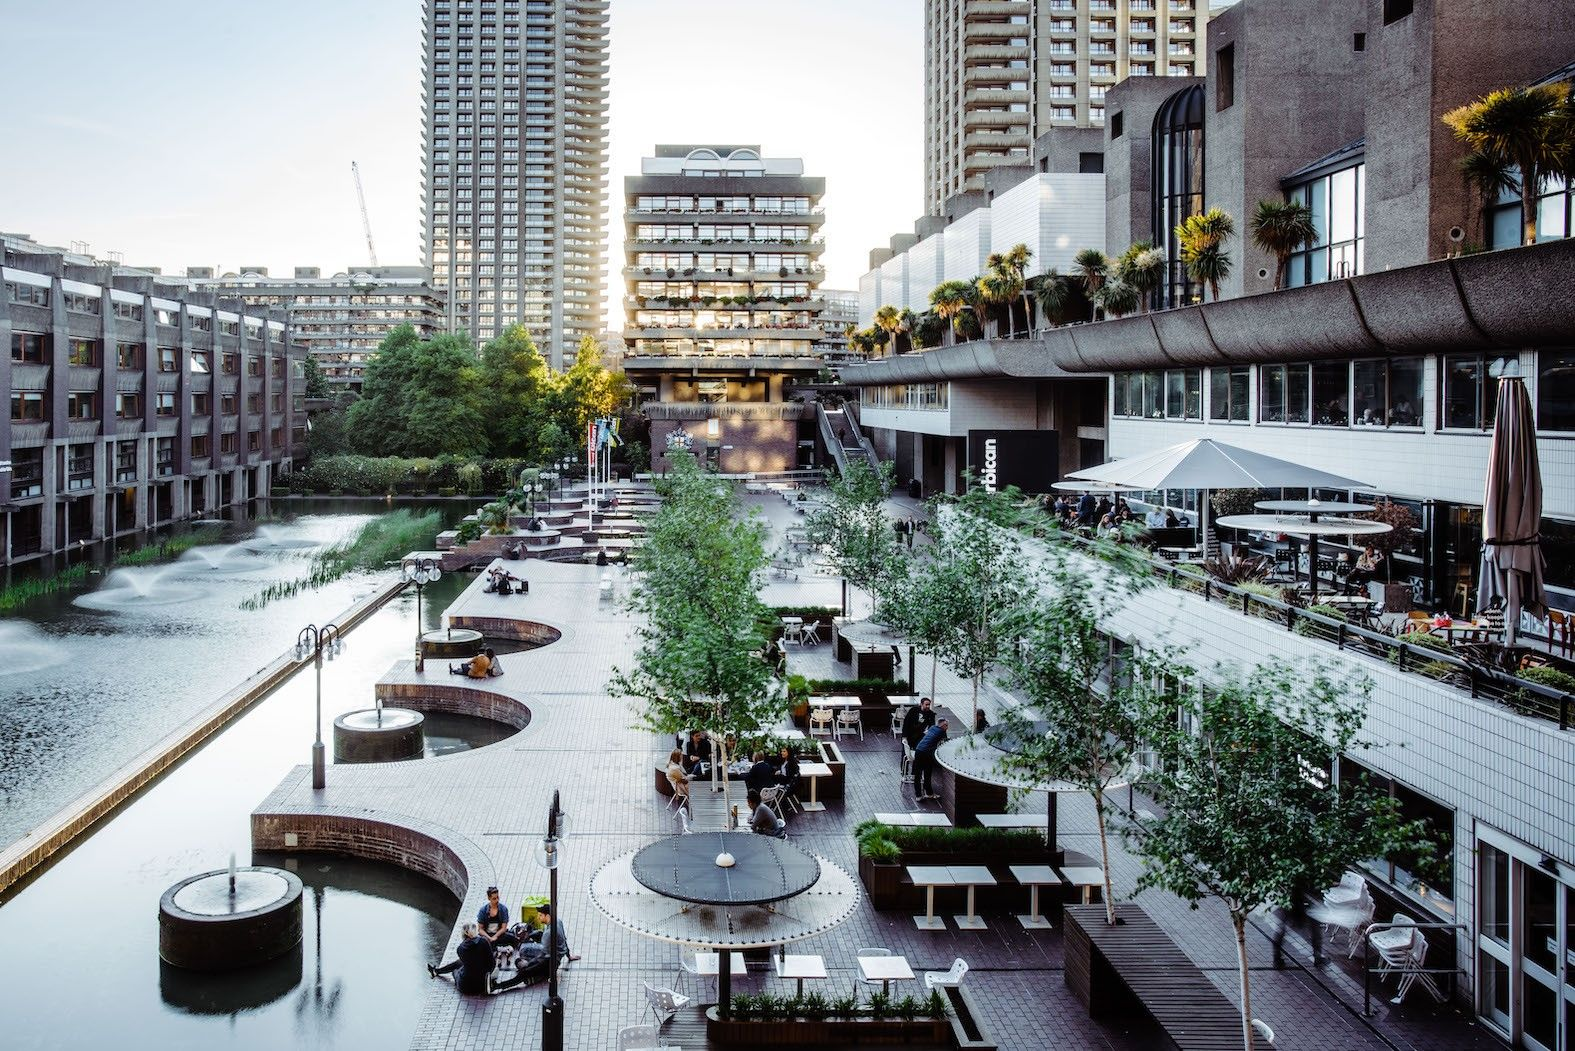 World's best architects and designers asked to renew Barbican Centre